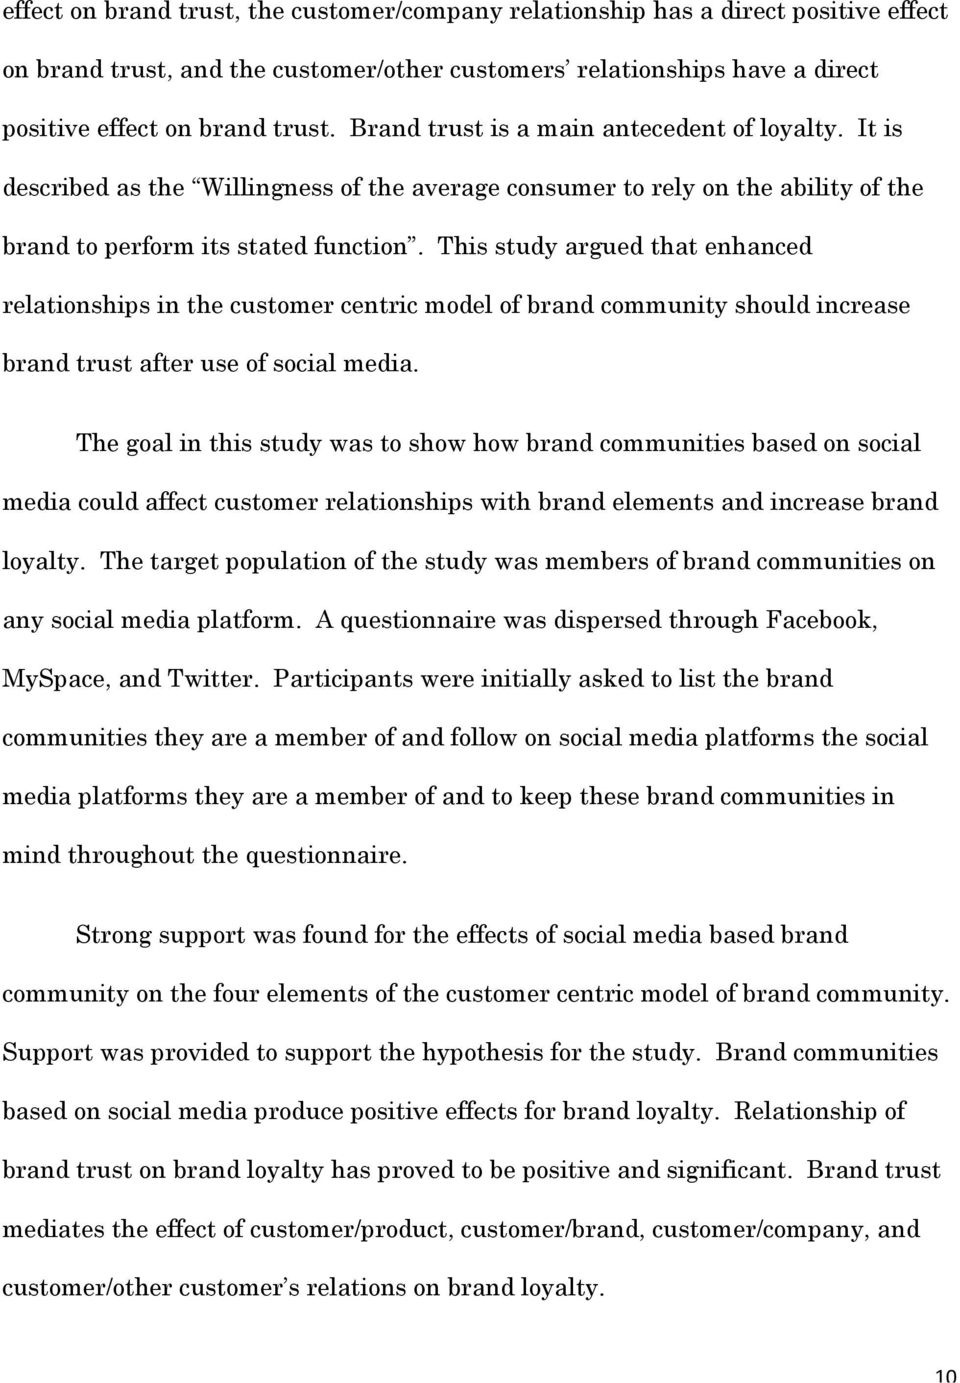 This study argued that enhanced relationships in the customer centric model of brand community should increase brand trust after use of social media.